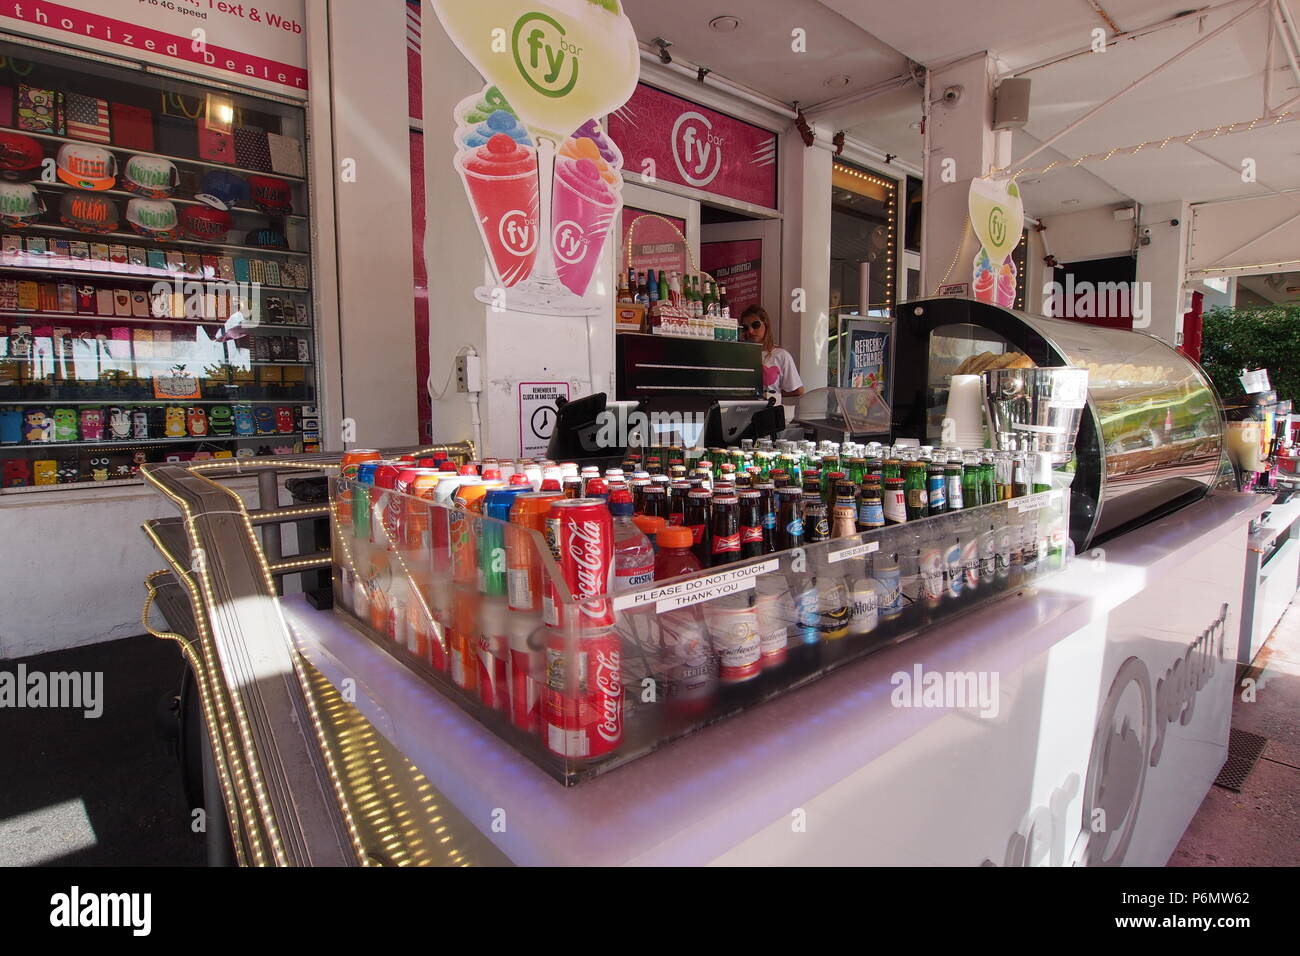 Sidewalk stall selling sodas, beer, pastries, etc. on Ocean Drive in Miami Beach, Florida, United States. - Stock Image